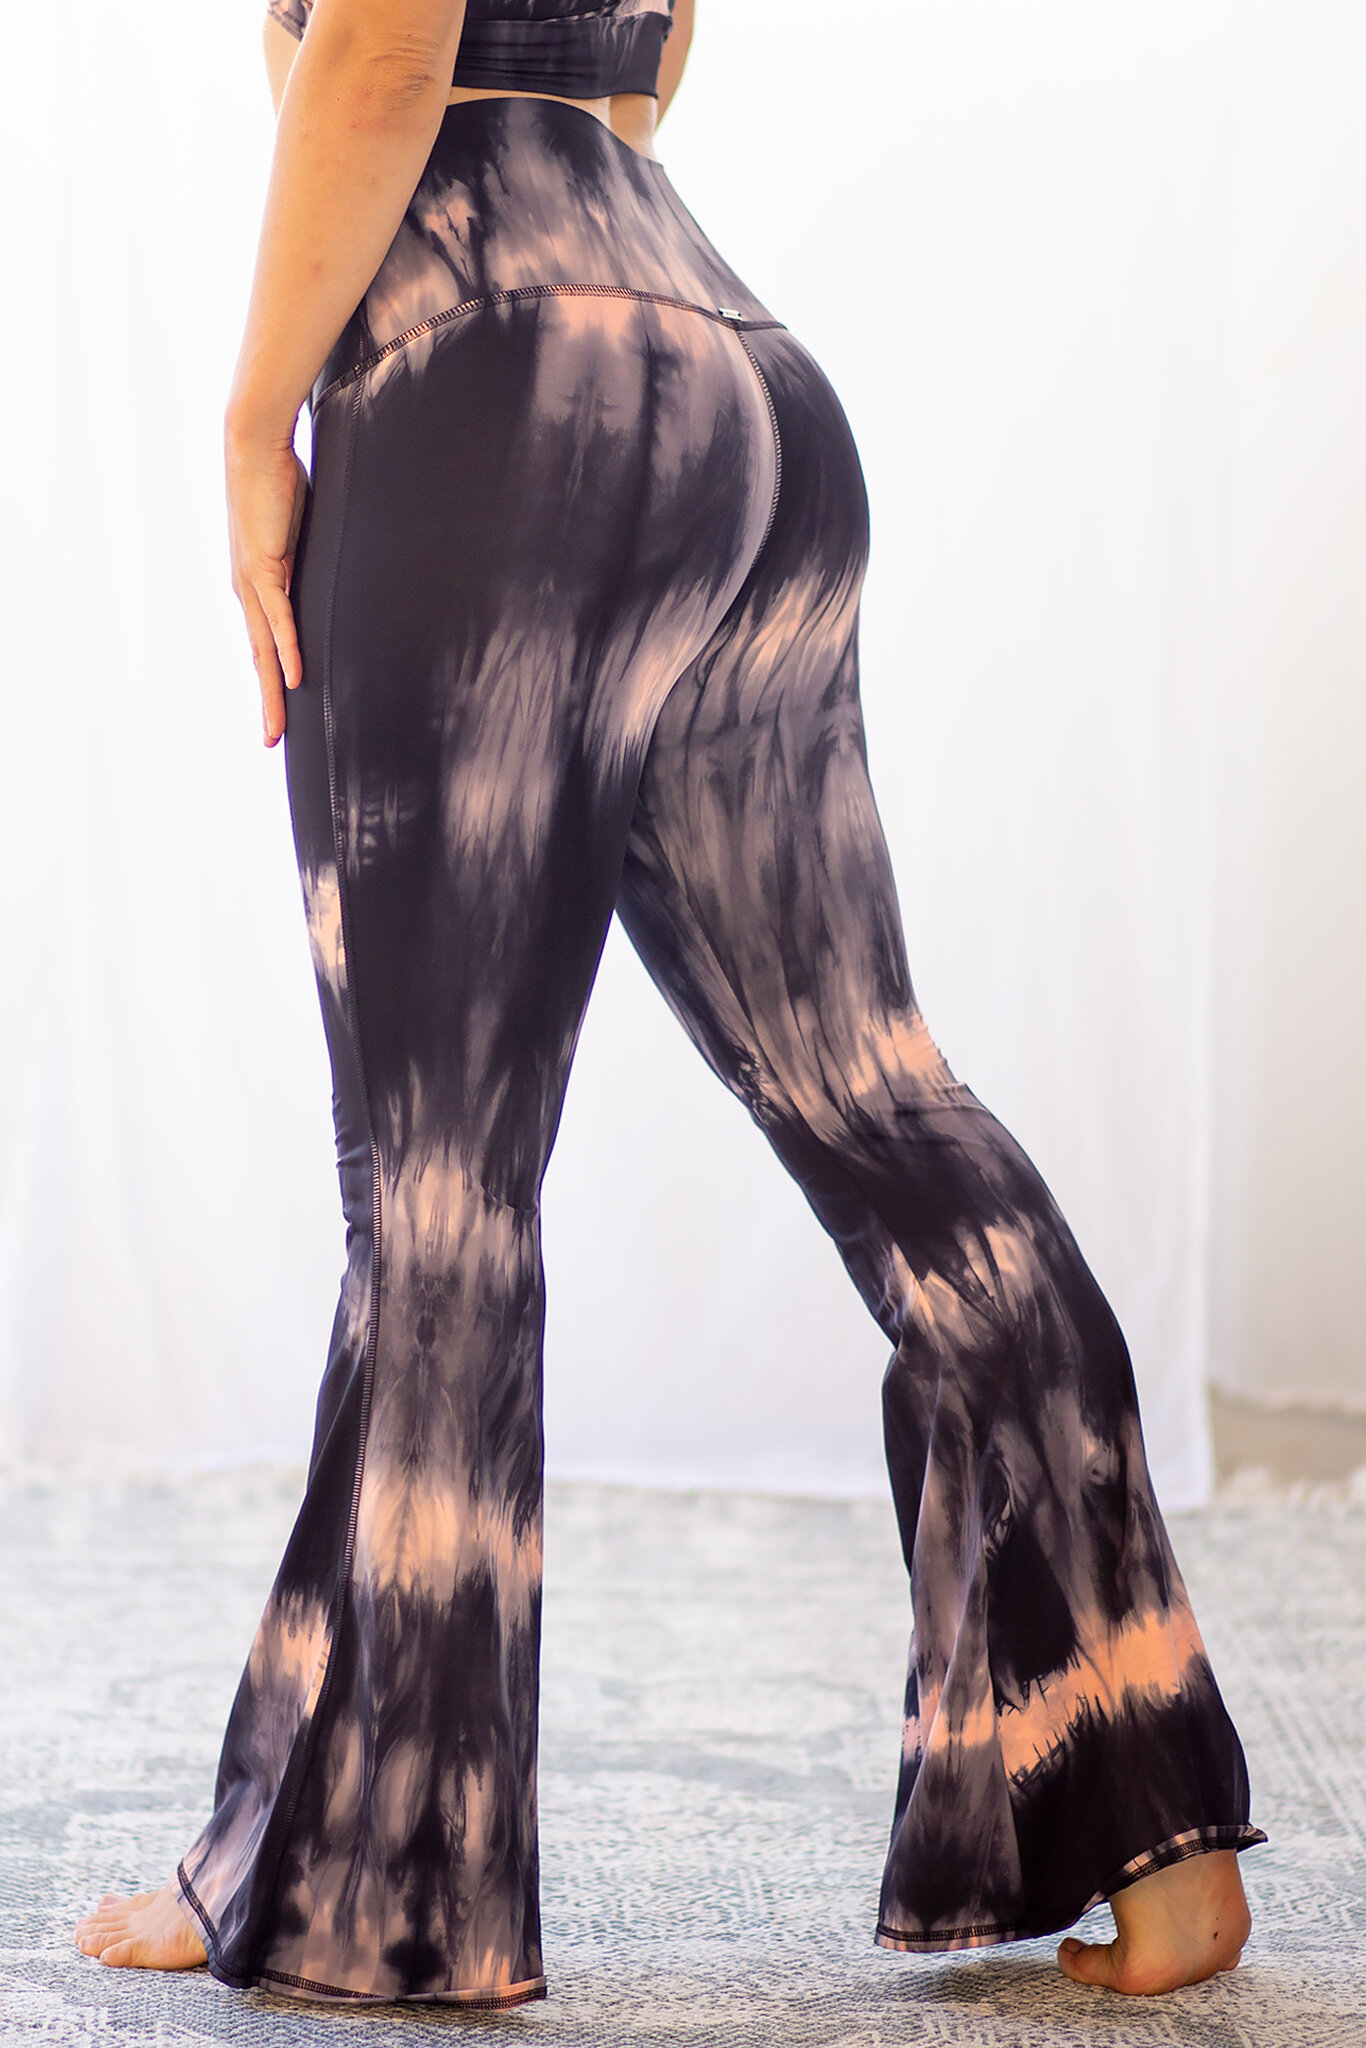 - 9. Lounge Lover: Bell BottomsWhether dancing around or laying around, gift groovy with our classic Bella Luna Pants!